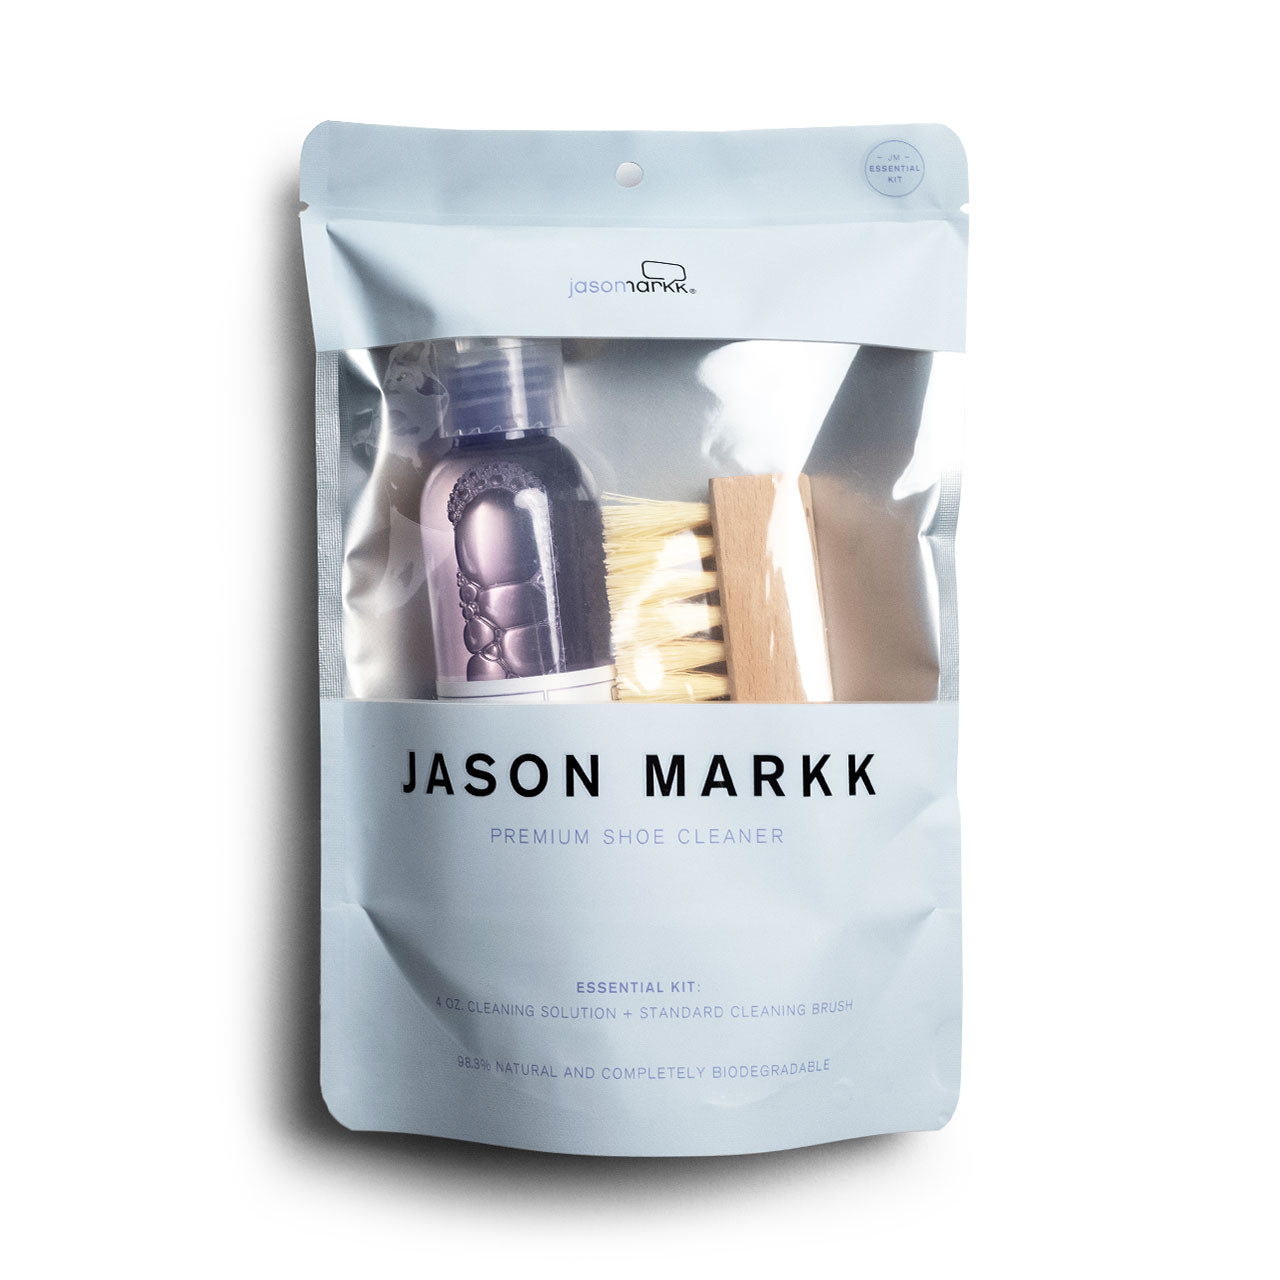 Jason Markk Essentials Kit